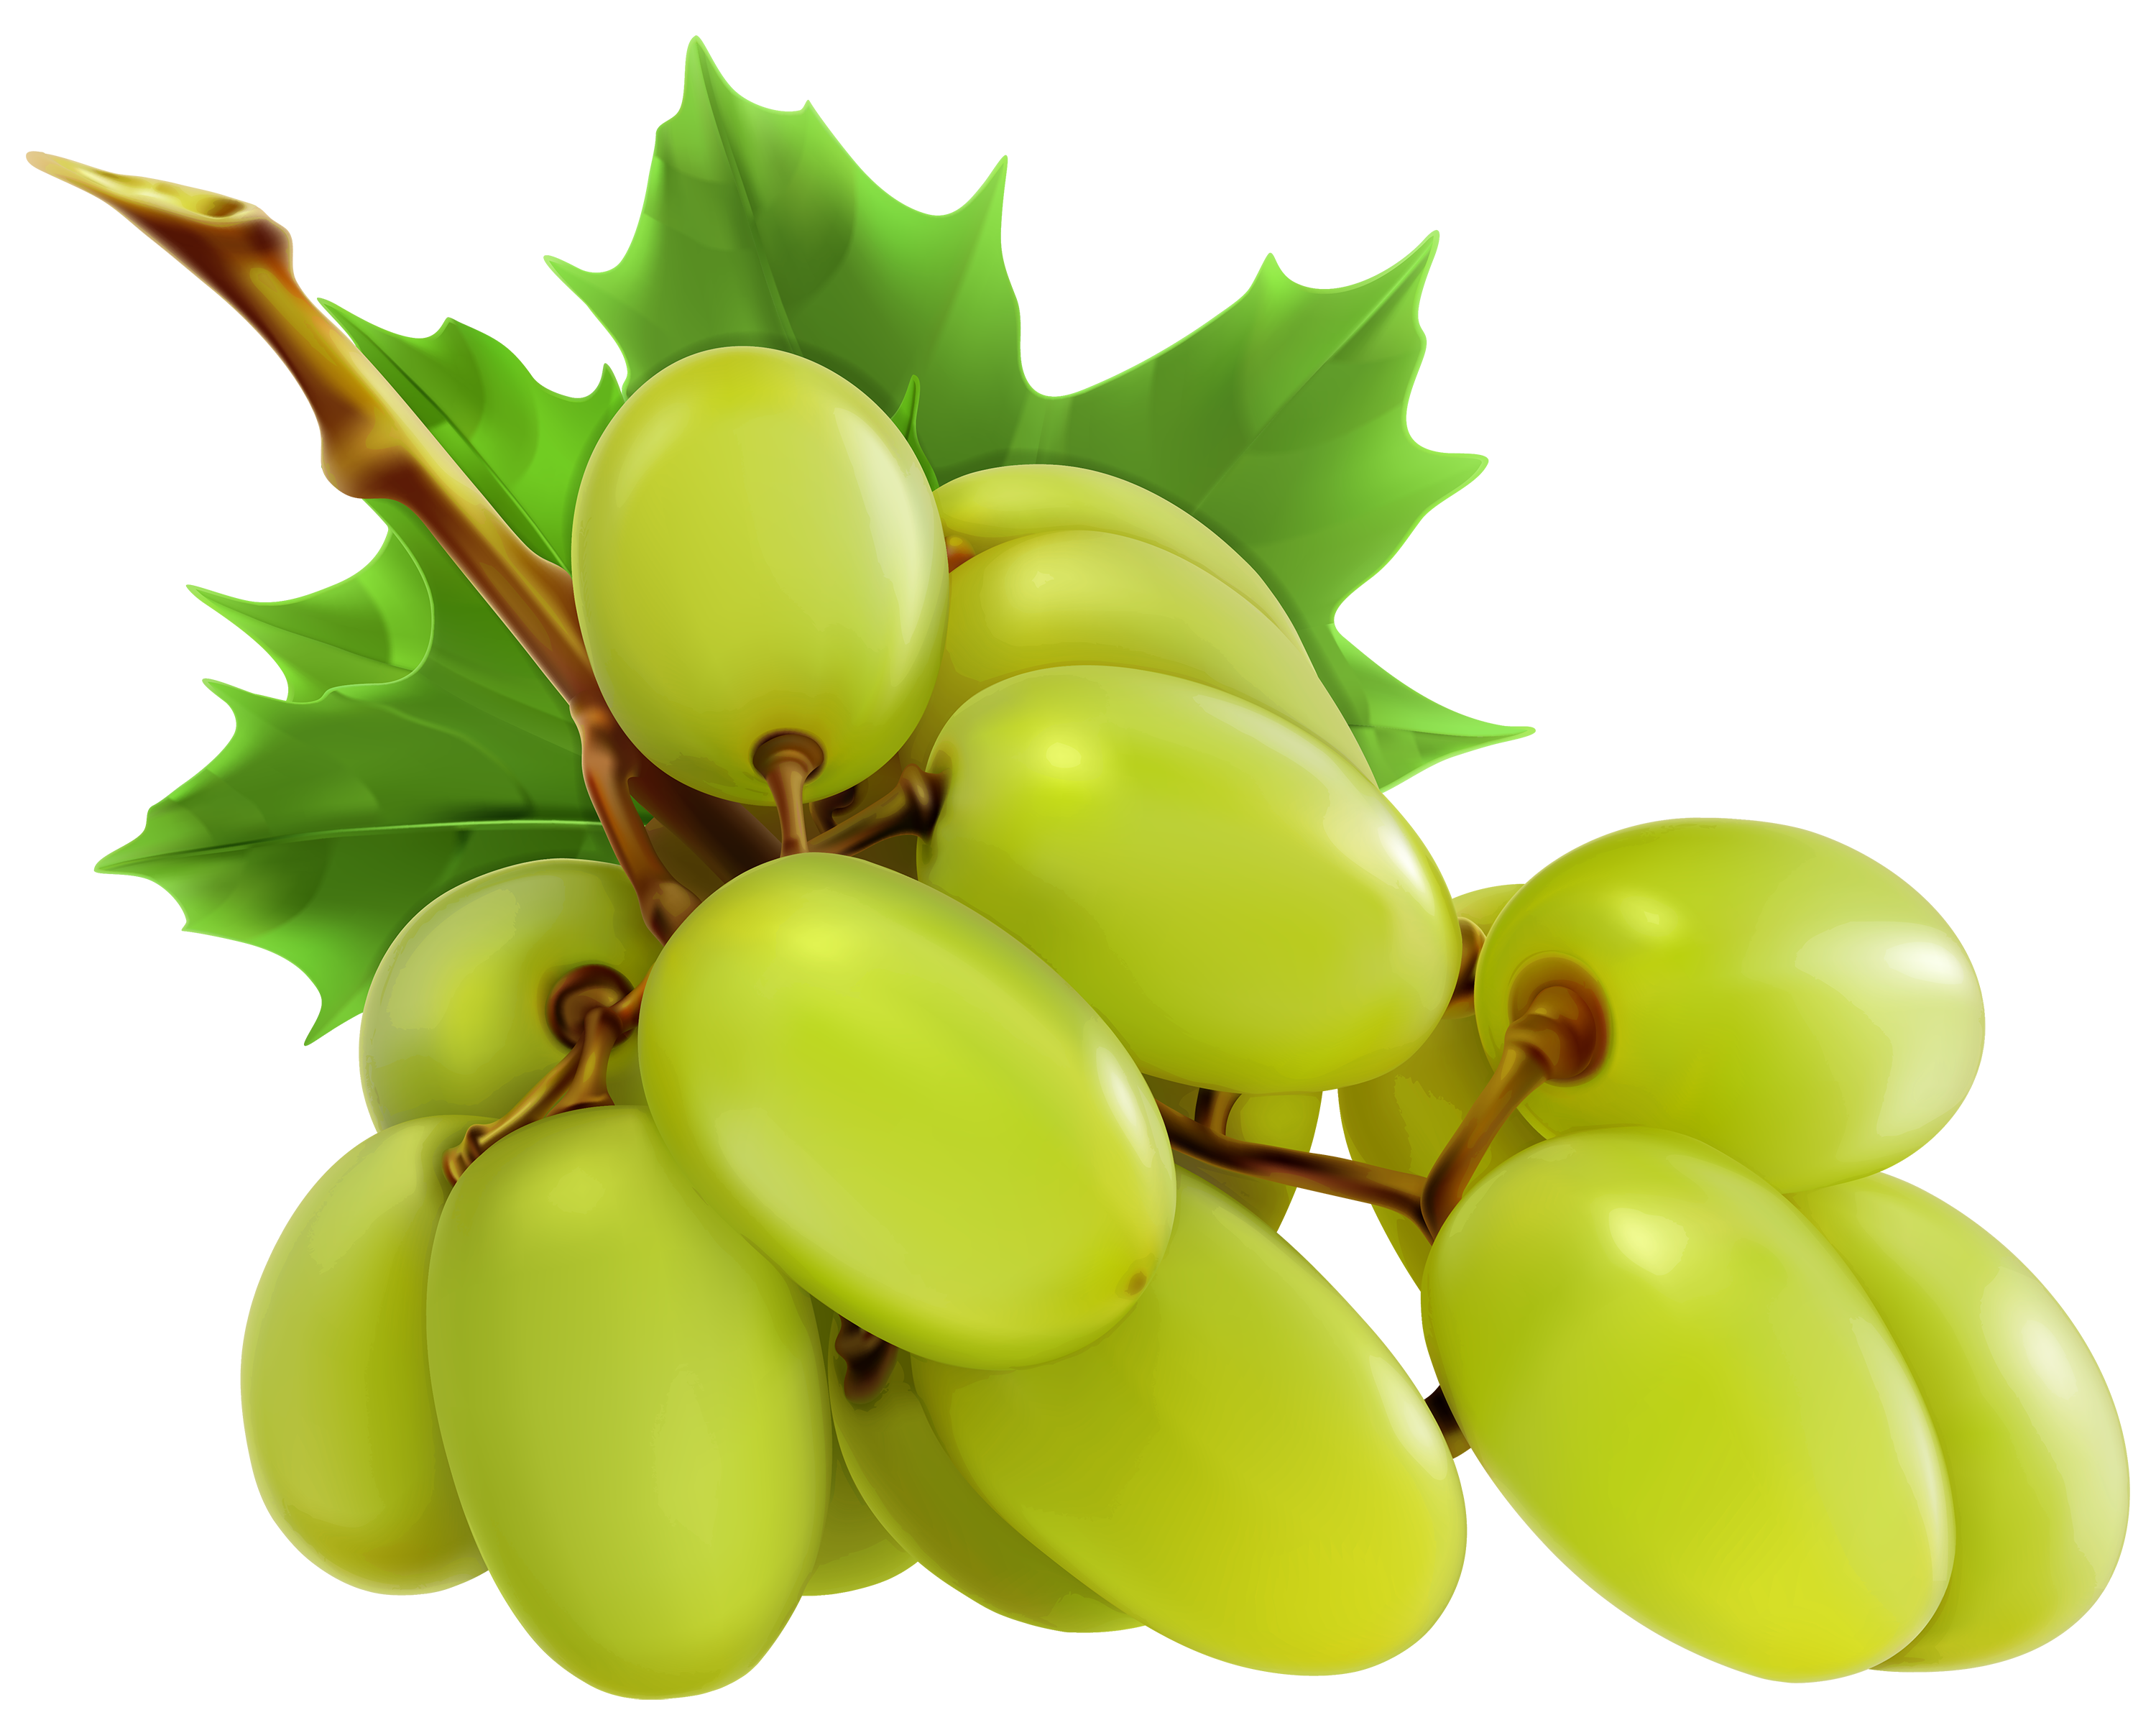 3000x2393 White Grapes Png Clipart